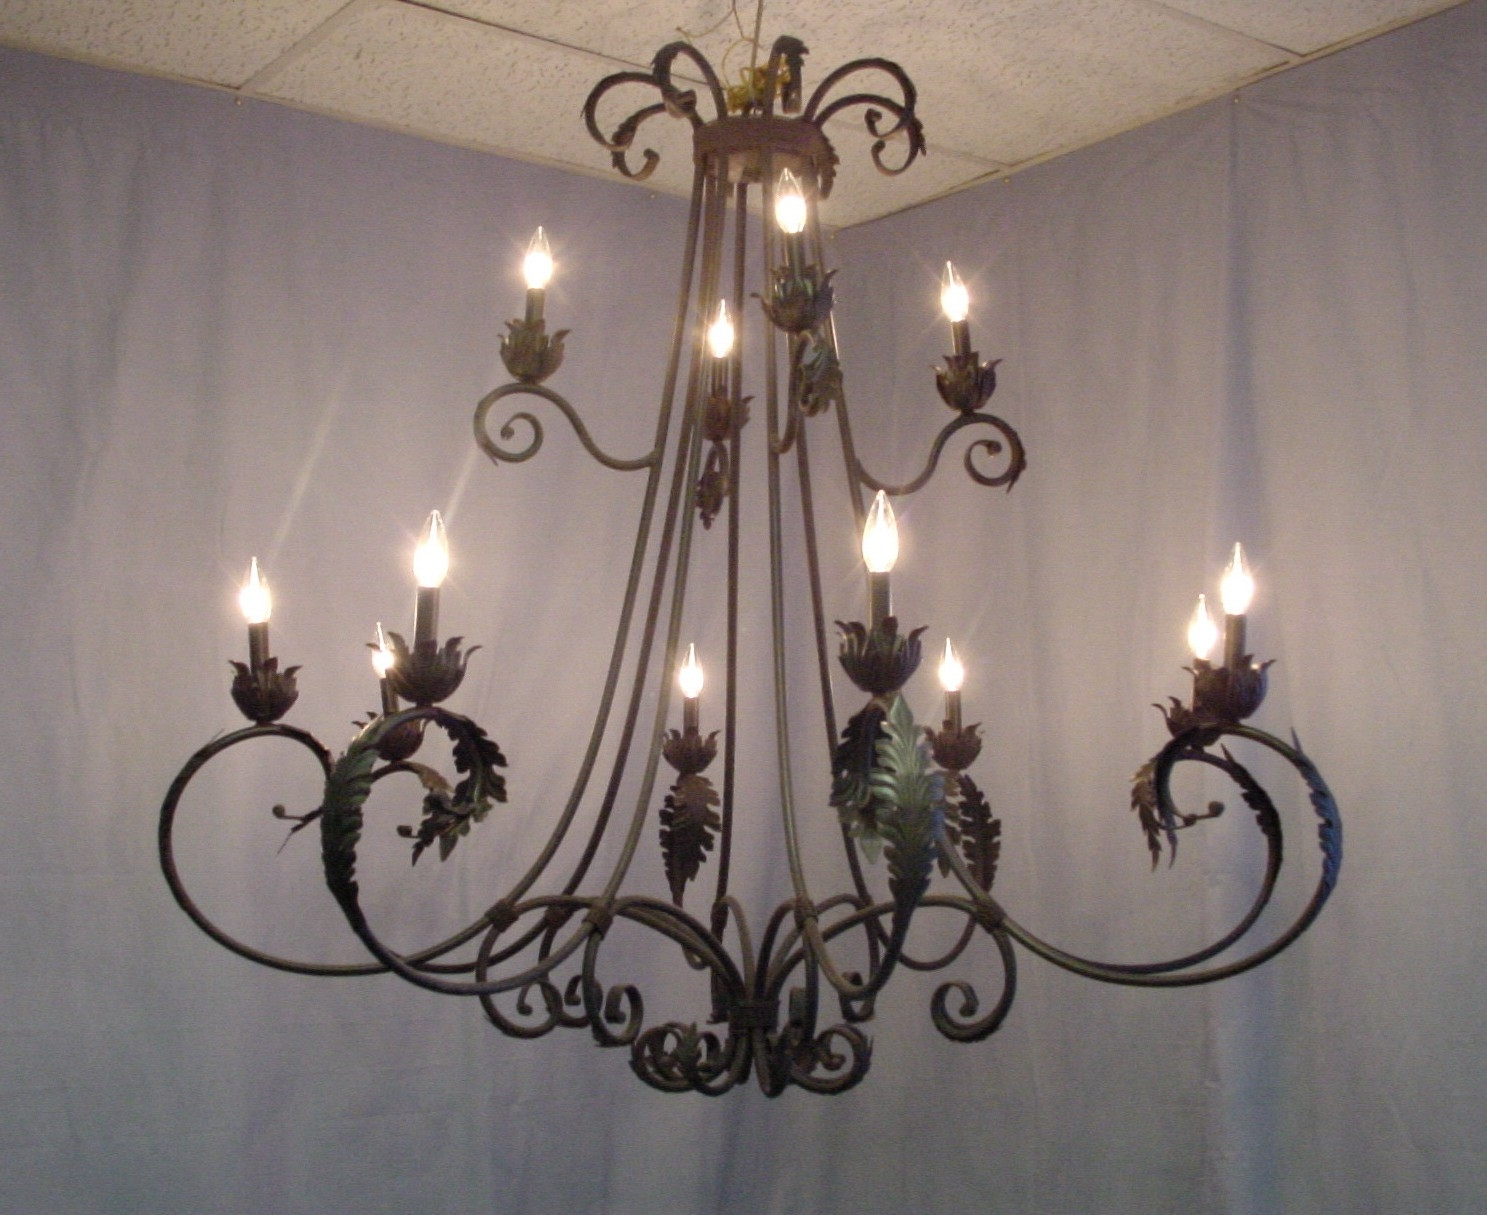 Wrought Iron Chandeliers Lamp World With Regard To Wrought Iron Chandeliers (Image 12 of 15)